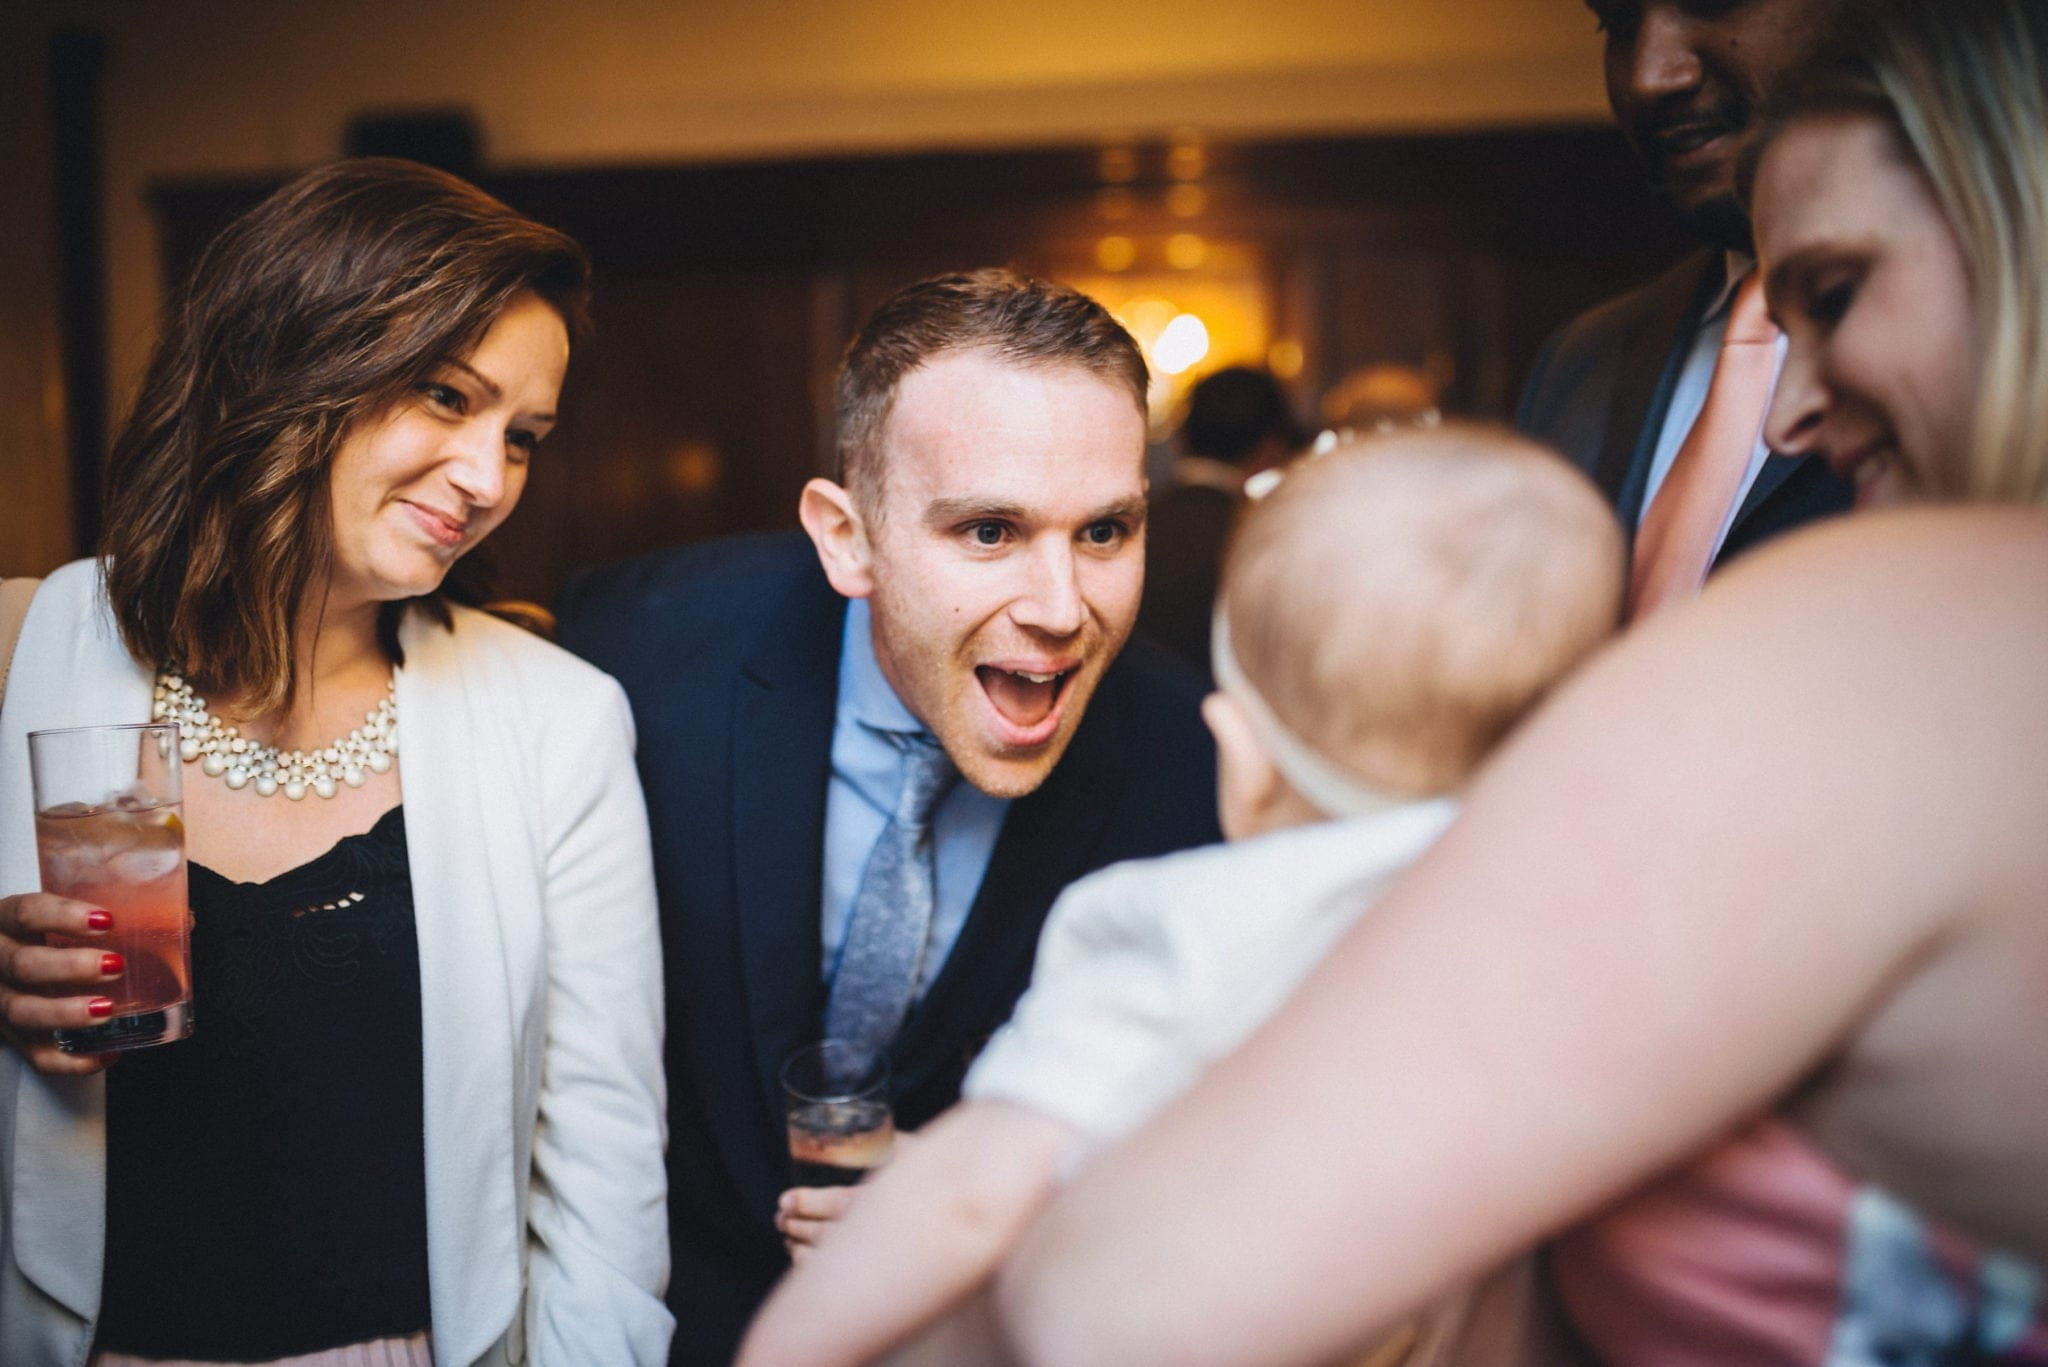 Guests smile at a baby